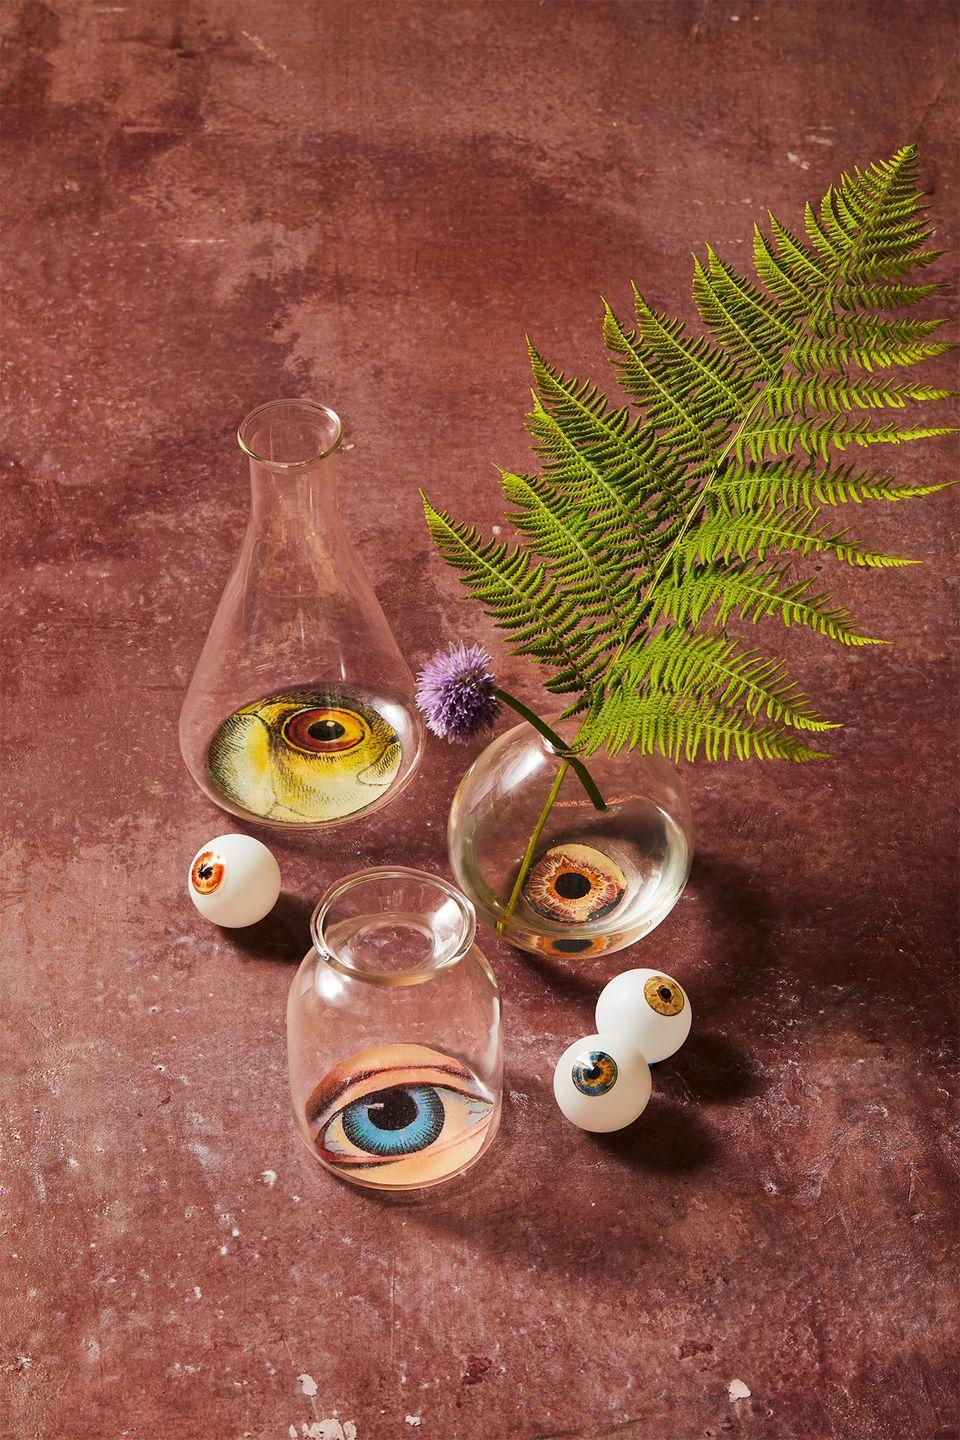 """<p>Use these eerie vessels as vases, or as cocktail glasses (they're food safe as long as the liquid doesn't come in contact with the decoupaged artwork). Gather a mix of clean recycled bottles and jars, <a href=""""https://www.jamaligarden.com/4in-smoke-ball-bud-vase.html"""" rel=""""nofollow noopener"""" target=""""_blank"""" data-ylk=""""slk:bud vases"""" class=""""link rapid-noclick-resp"""">bud vases</a> and chemistry <a href=""""https://www.jamaligarden.com/6in-lab-glass-bud-vase-set-of-4.html"""" rel=""""nofollow noopener"""" target=""""_blank"""" data-ylk=""""slk:flasks"""" class=""""link rapid-noclick-resp"""">flasks</a>, then <a href=""""https://hmg-prod.s3.amazonaws.com/files/gh-halloween-artwork-1597083176.pdf?tag=syn-yahoo-20&ascsubtag=%5Bartid%7C10055.g.33437890%5Bsrc%7Cyahoo-us"""" rel=""""nofollow noopener"""" target=""""_blank"""" data-ylk=""""slk:download our eyeball clip art"""" class=""""link rapid-noclick-resp"""">download our eyeball clip art</a> and print onto regular printer paper. Cut out the eye shapes to fit to the bottom of the jars. Paint a thin layer of Mod Podge to the bottom exterior of the glass and place your cut paper (artwork-side down) on top. Smooth out any air bubbles or wrinkles with your fingers and let dry. Paint on a couple additional layers of Mod Podge to seal and let dry several hours. <br></p>"""